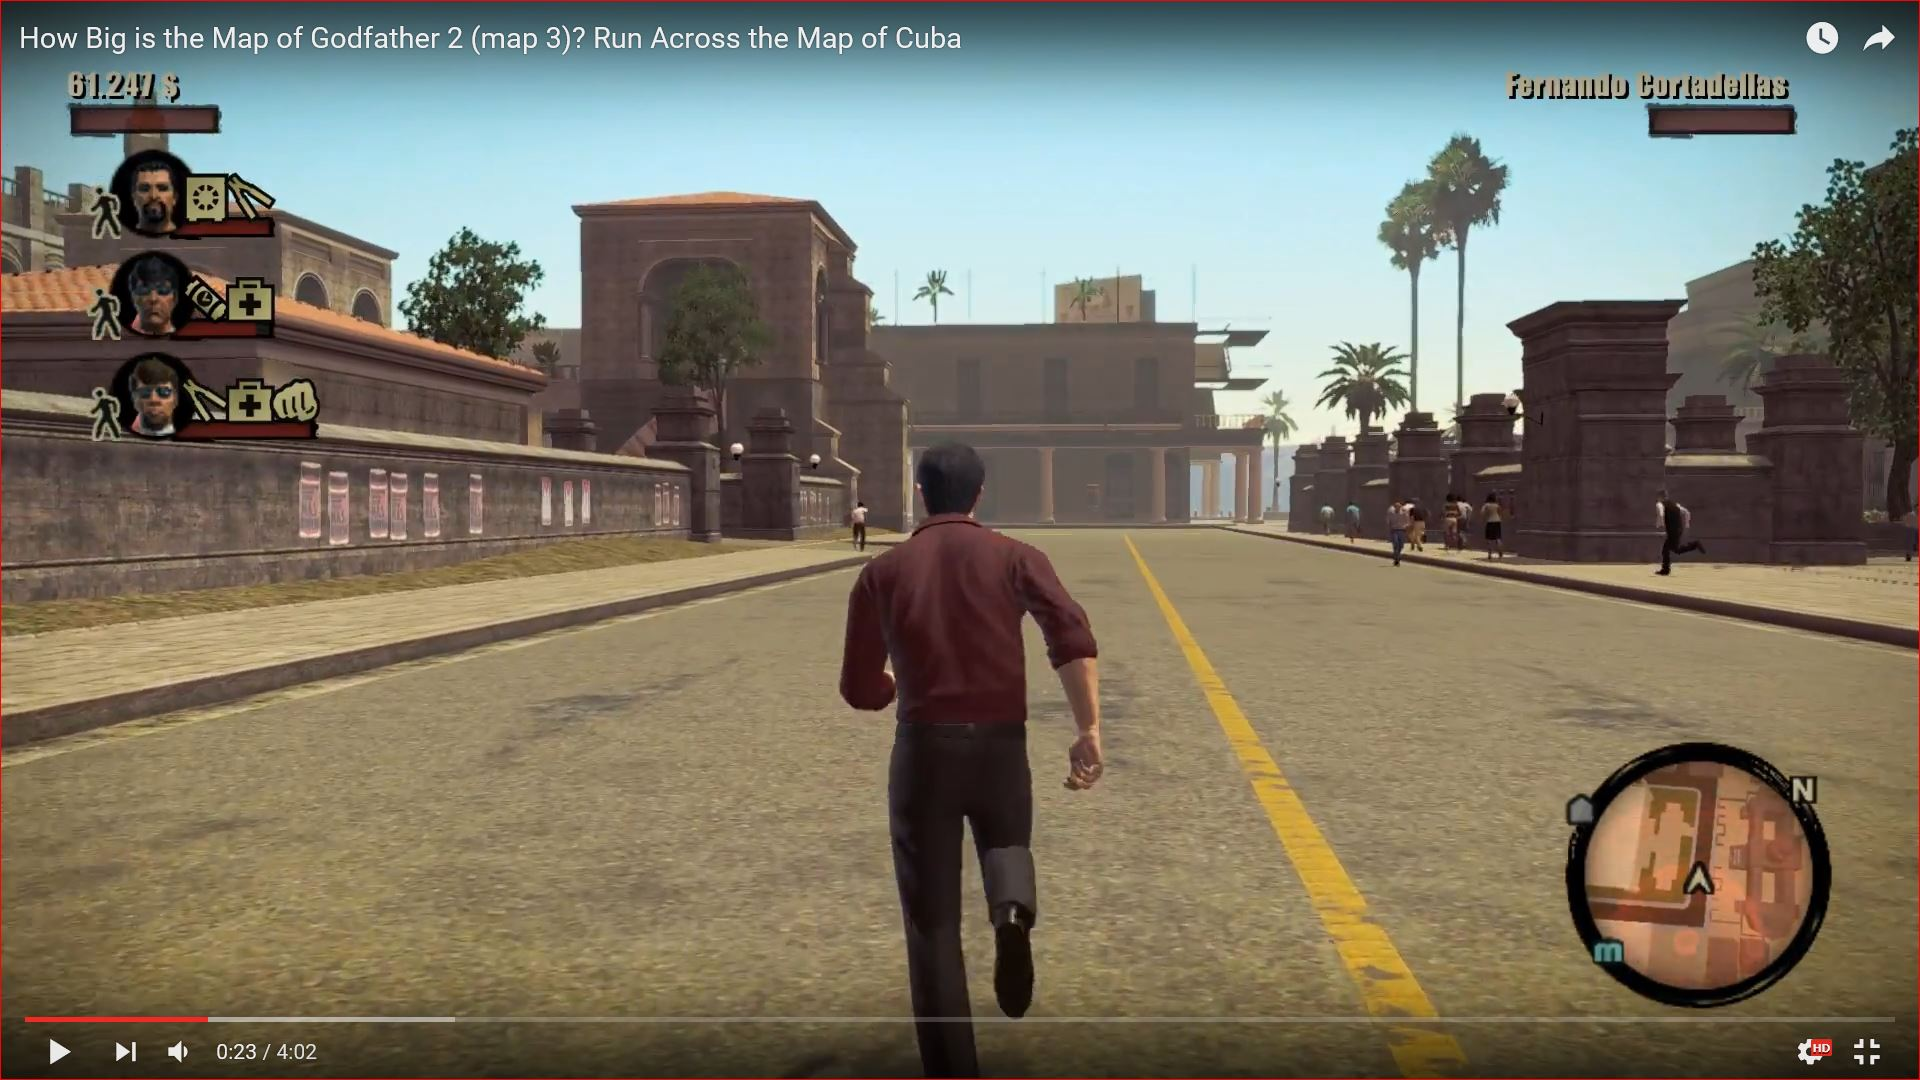 Godfather II (Map 3) - Run Across the Map of Cuba - How Big ... on mafia 2 map, halo 2 map, mother 2 map, the godfather map, godfather beverly hills house, batman 2 map, goonies 2 map, godfather game windows 8, half-life 2 map, godfather filming locations, godfather film, godfather five families, transformers 2 map, indiana jones 2 map, godfather movie house, saints row 2 map, just cause 2 map, godfather drawings, godfather 3 game, spiderman 2 map,